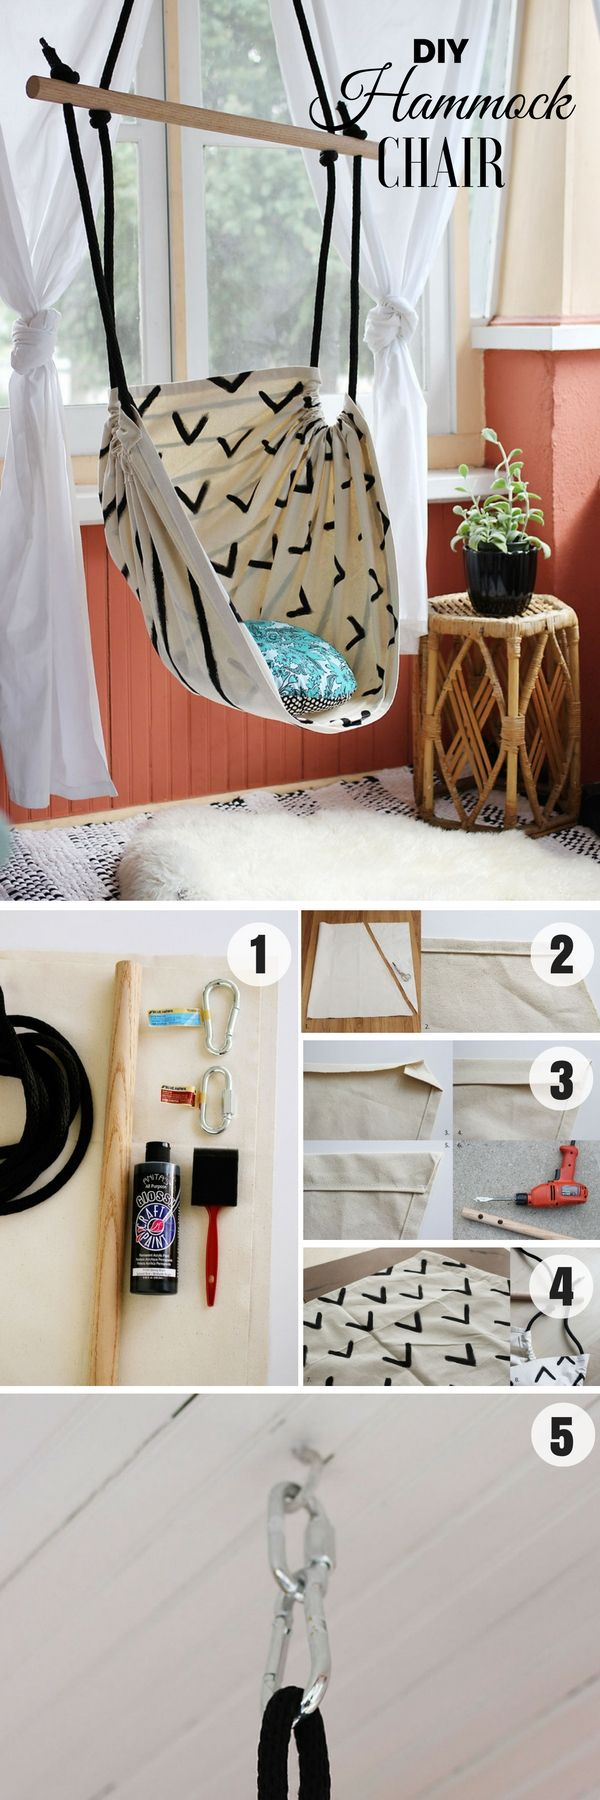 Bedroom Decorating Ideas Easy best 25+ easy diy room decor ideas only on pinterest | diy, diy